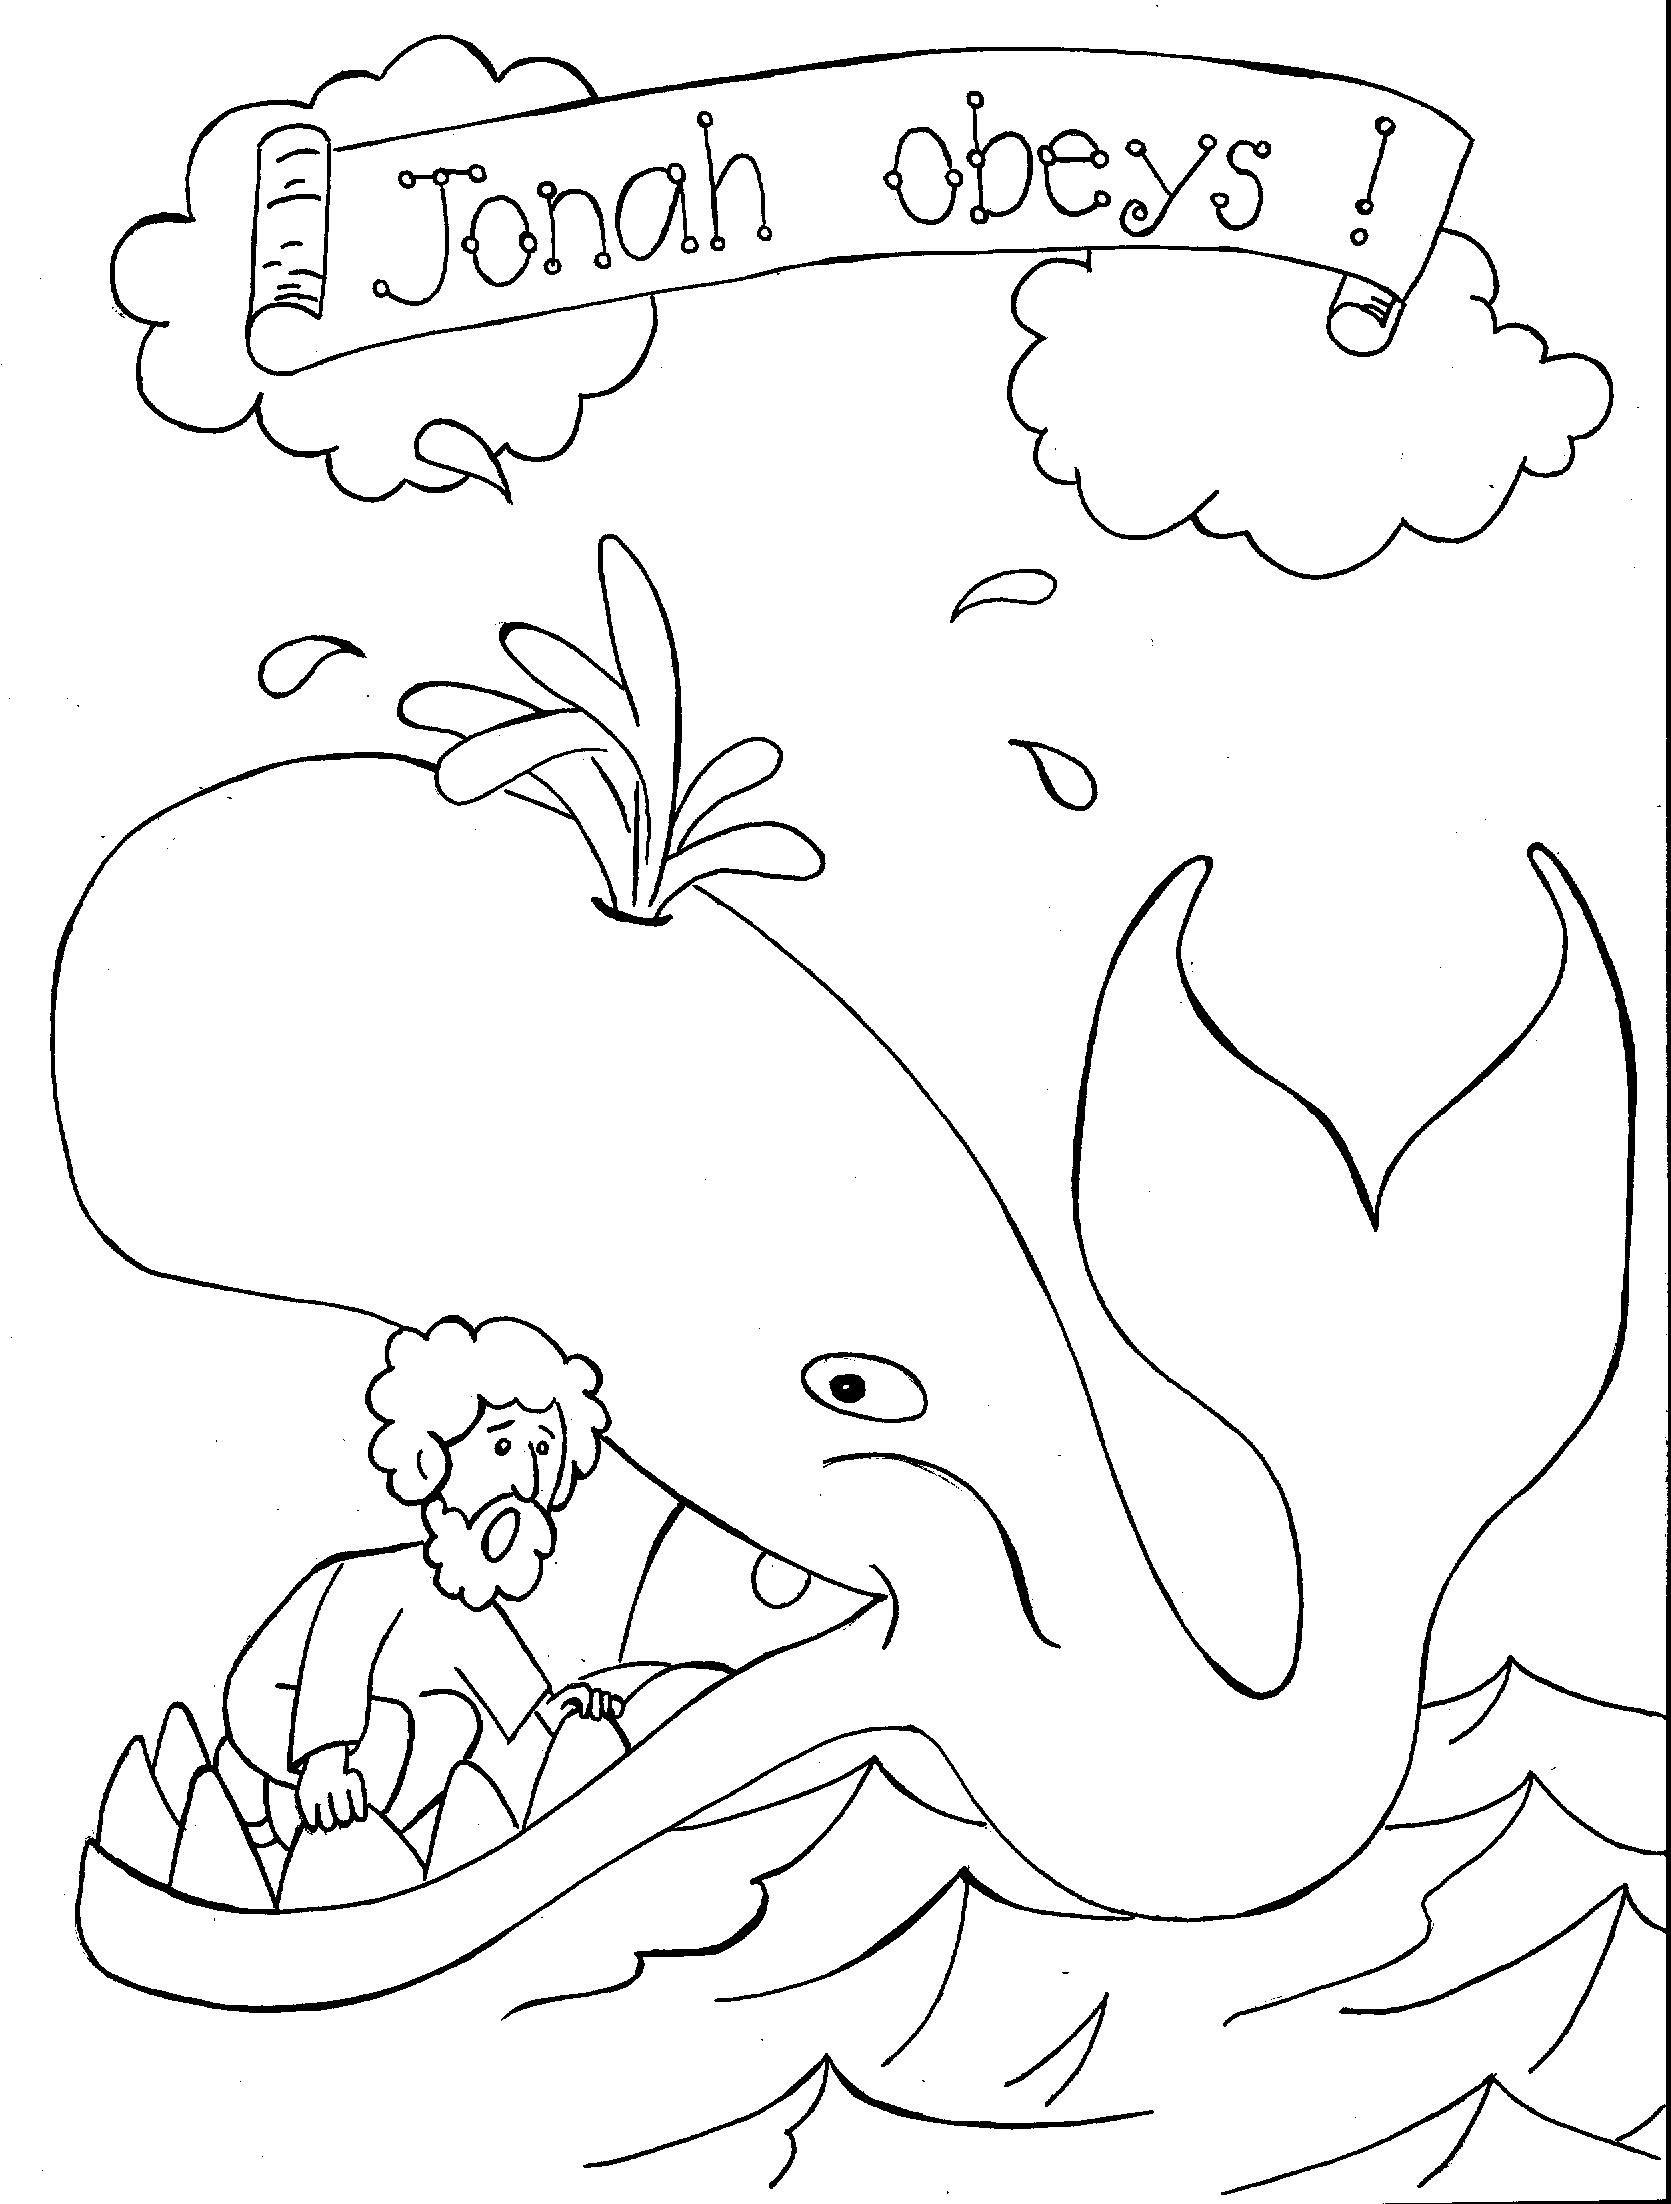 killer whale coloring page killer whale coloring page kids play color whale coloring killer page